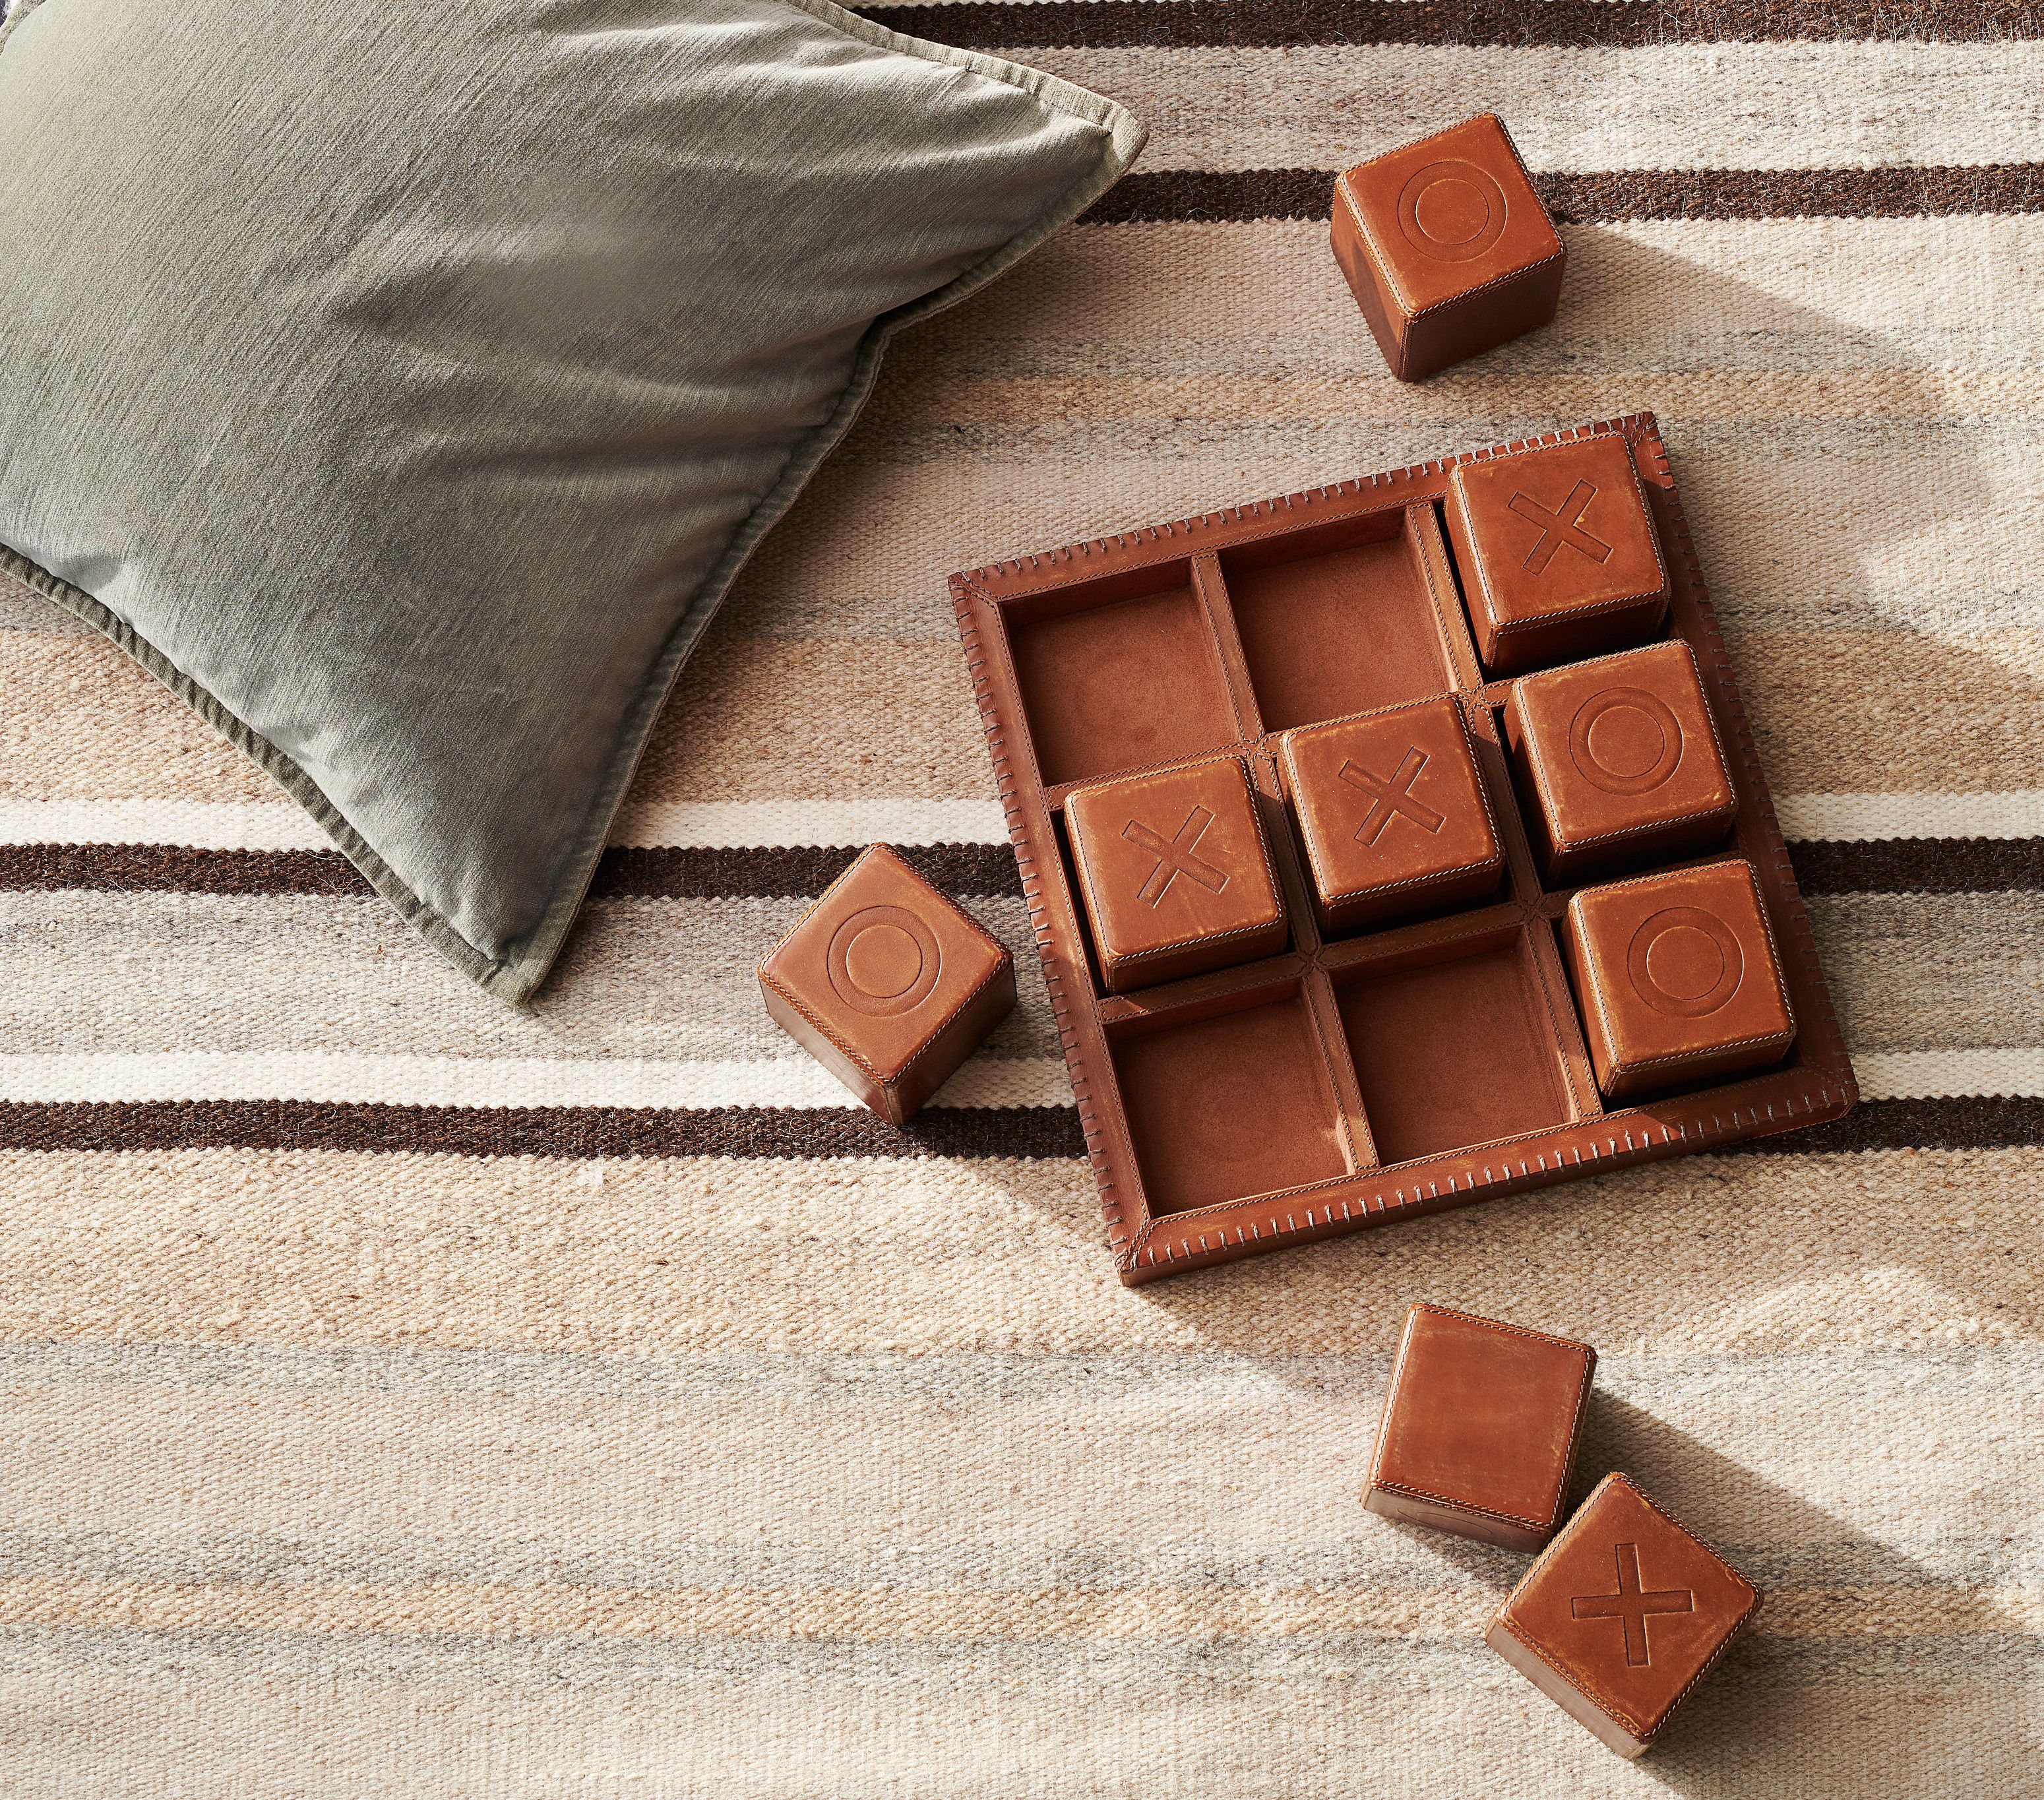 Pottery Barn Naughts and Crosses is oversized, in embossed leather